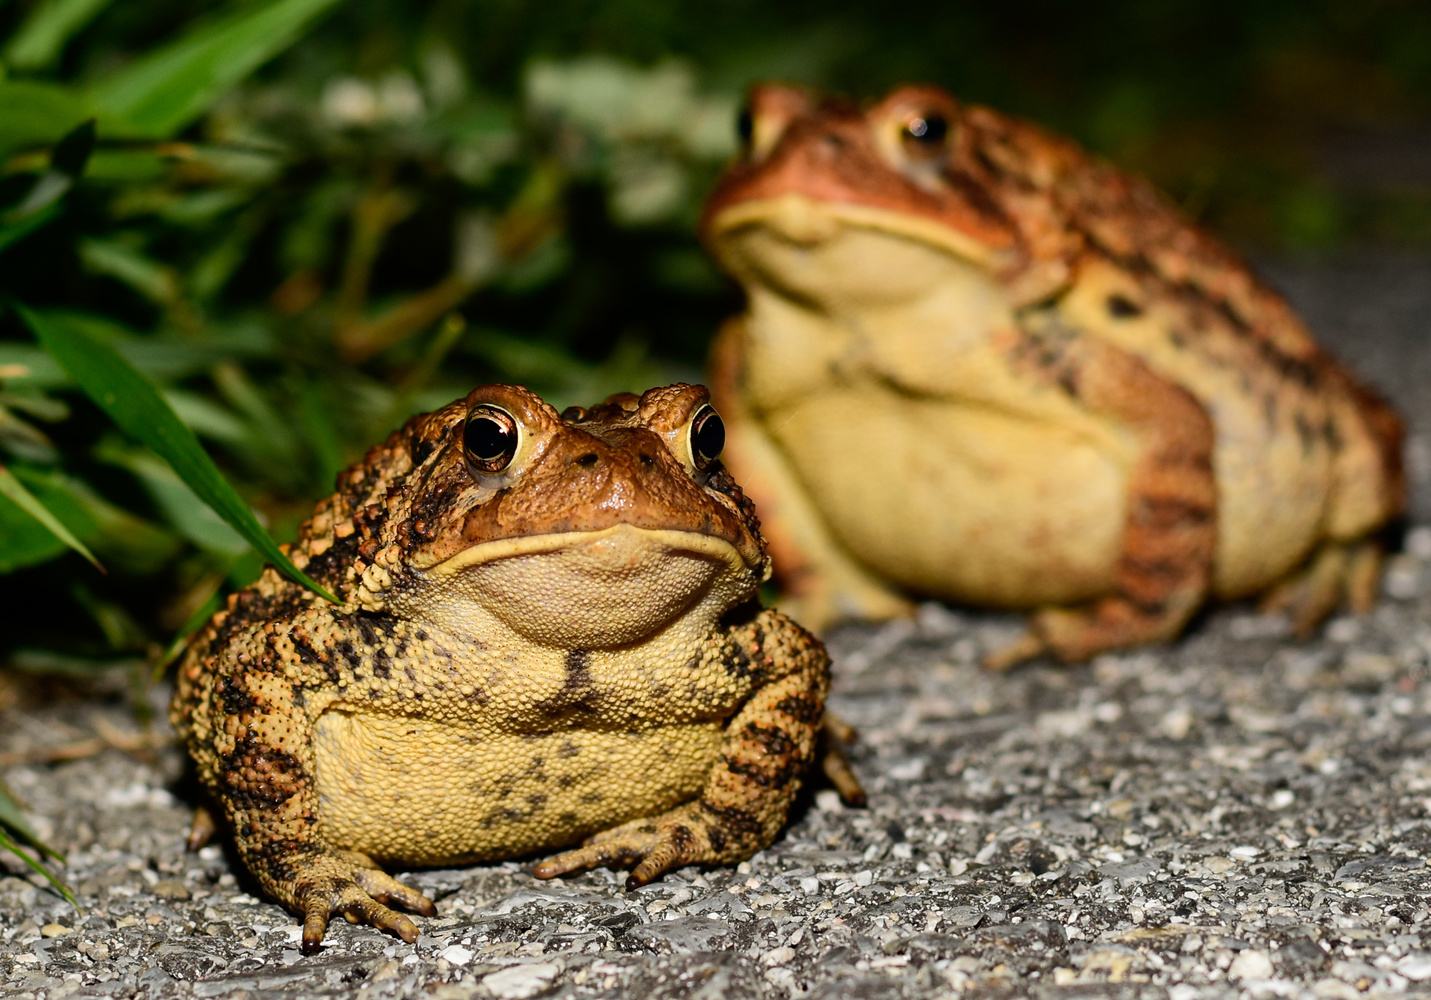 hoppy the toad by Chris Freeman